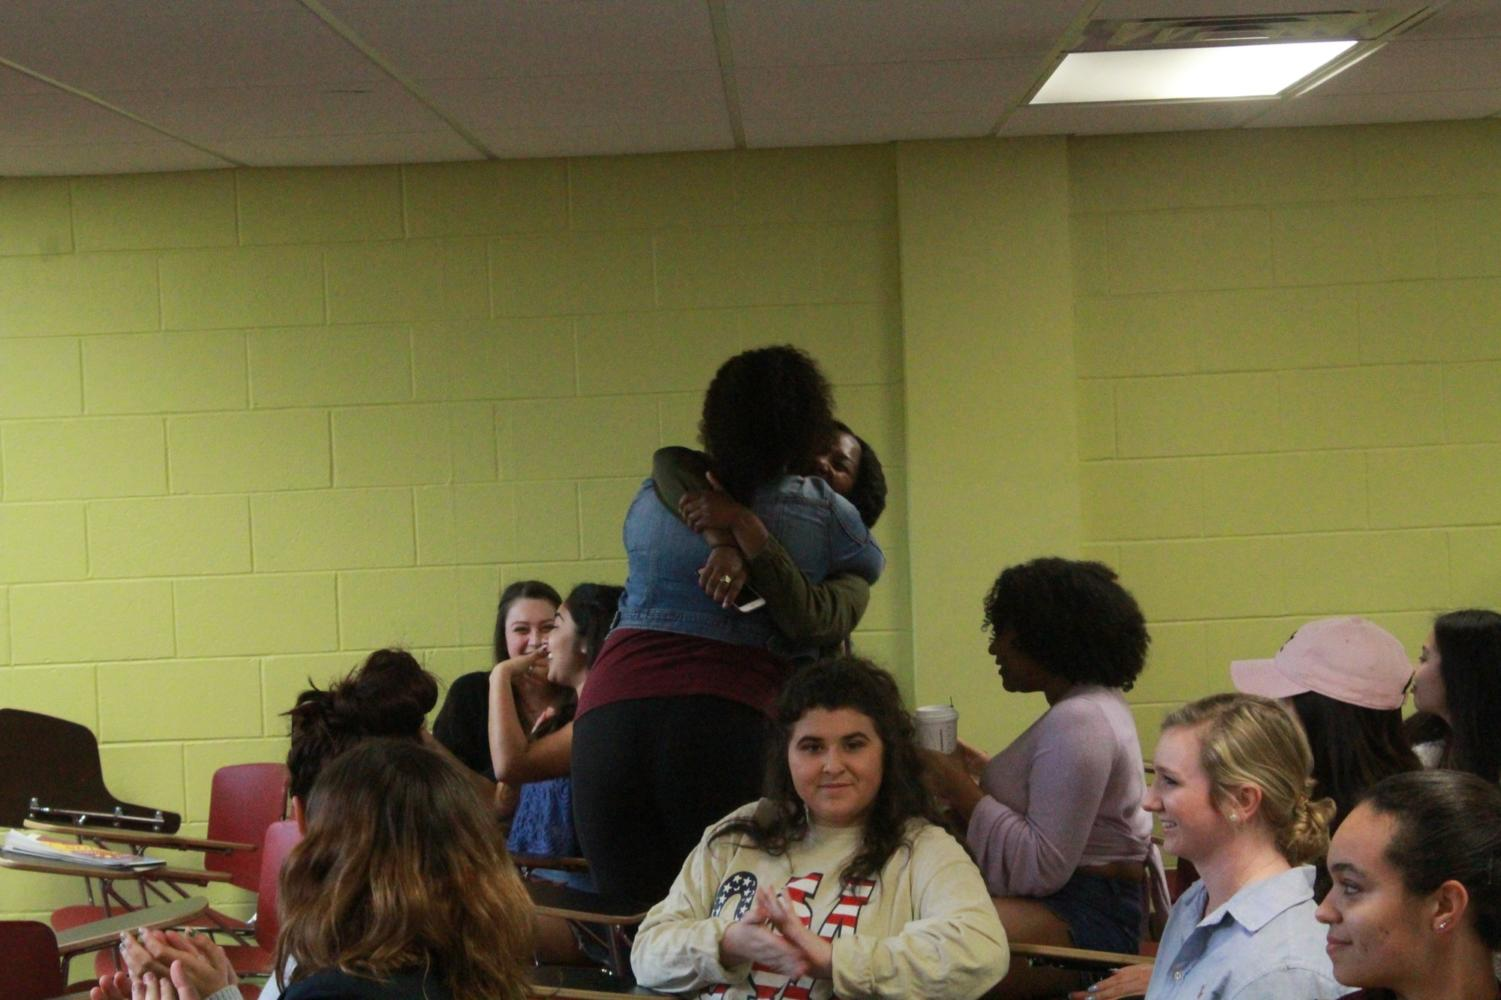 Sierra Ambrose and Joann Cassama share a hug after winning the SGA election on March 21, 2018.